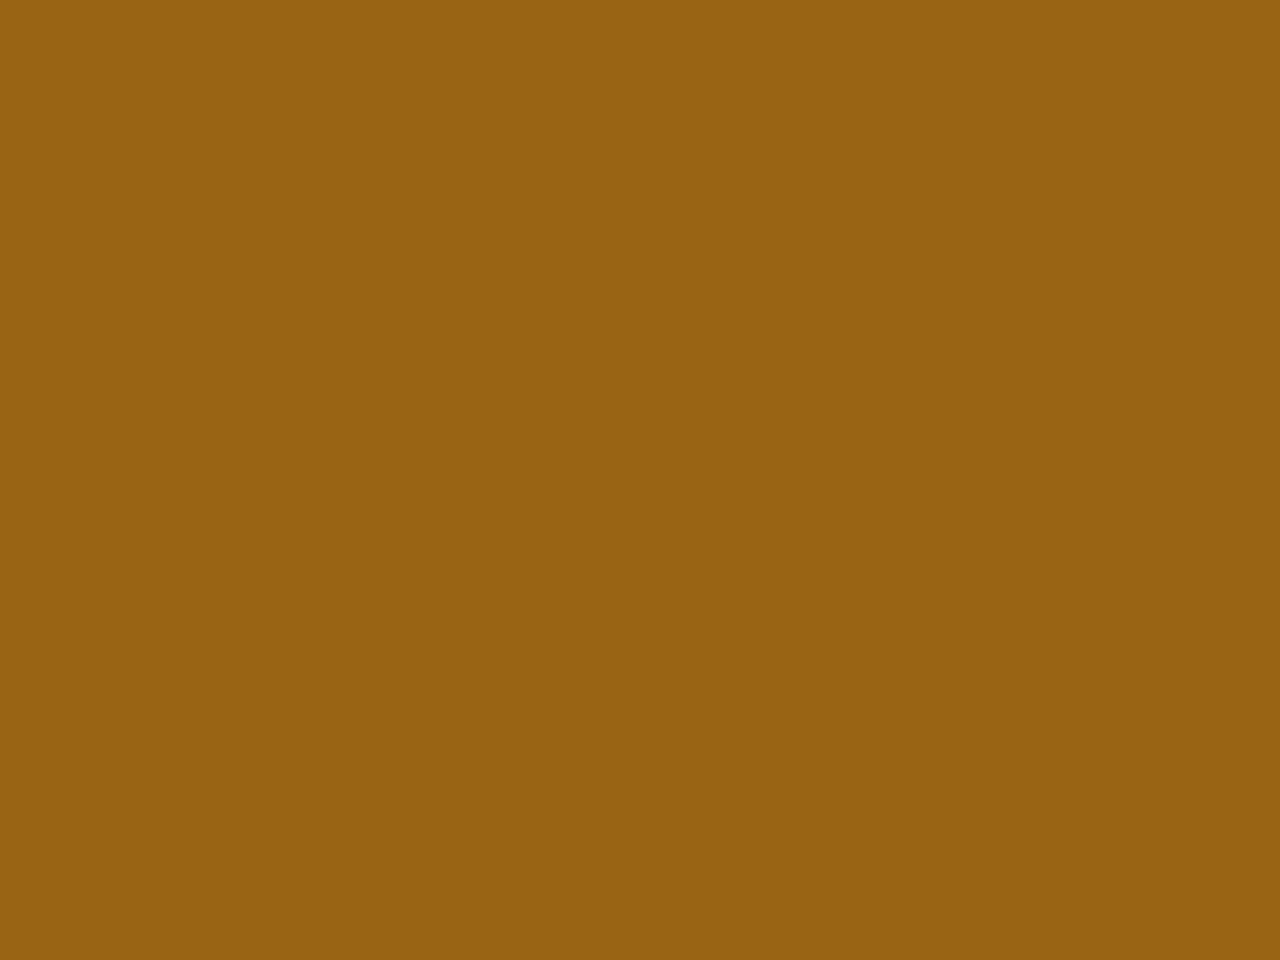 1280x960 Golden Brown Solid Color Background